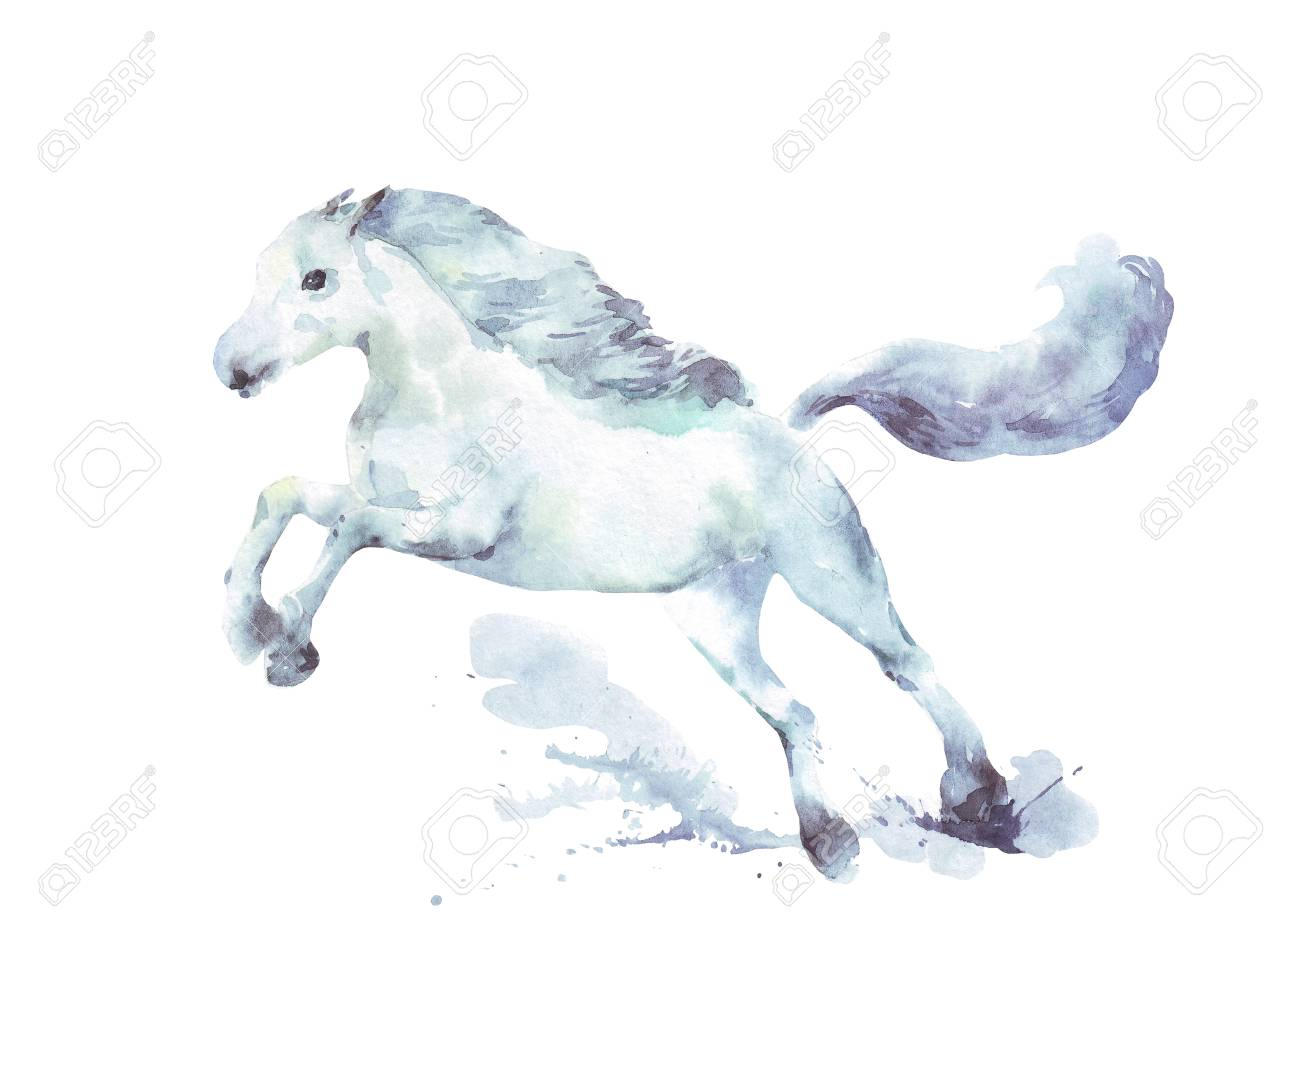 White Horse Running Watercolor Illustration Stock Photo Picture And Royalty Free Image Image 121867805